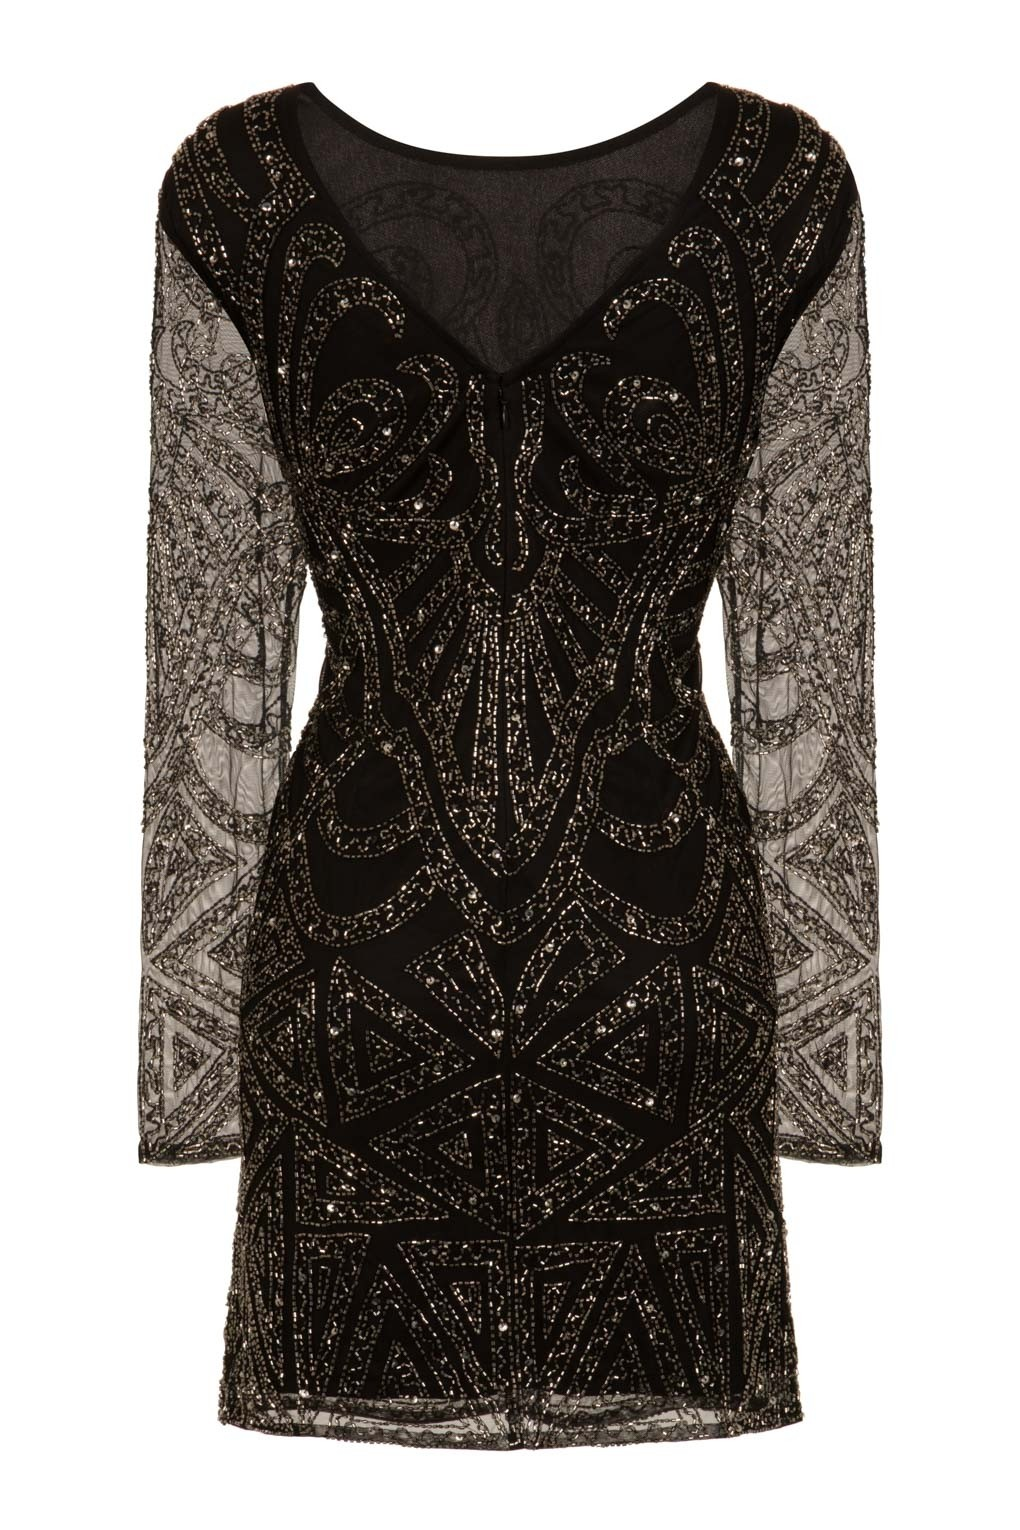 Lace Amp Beads Brooklyn Black Embellished Dress Party Dresses